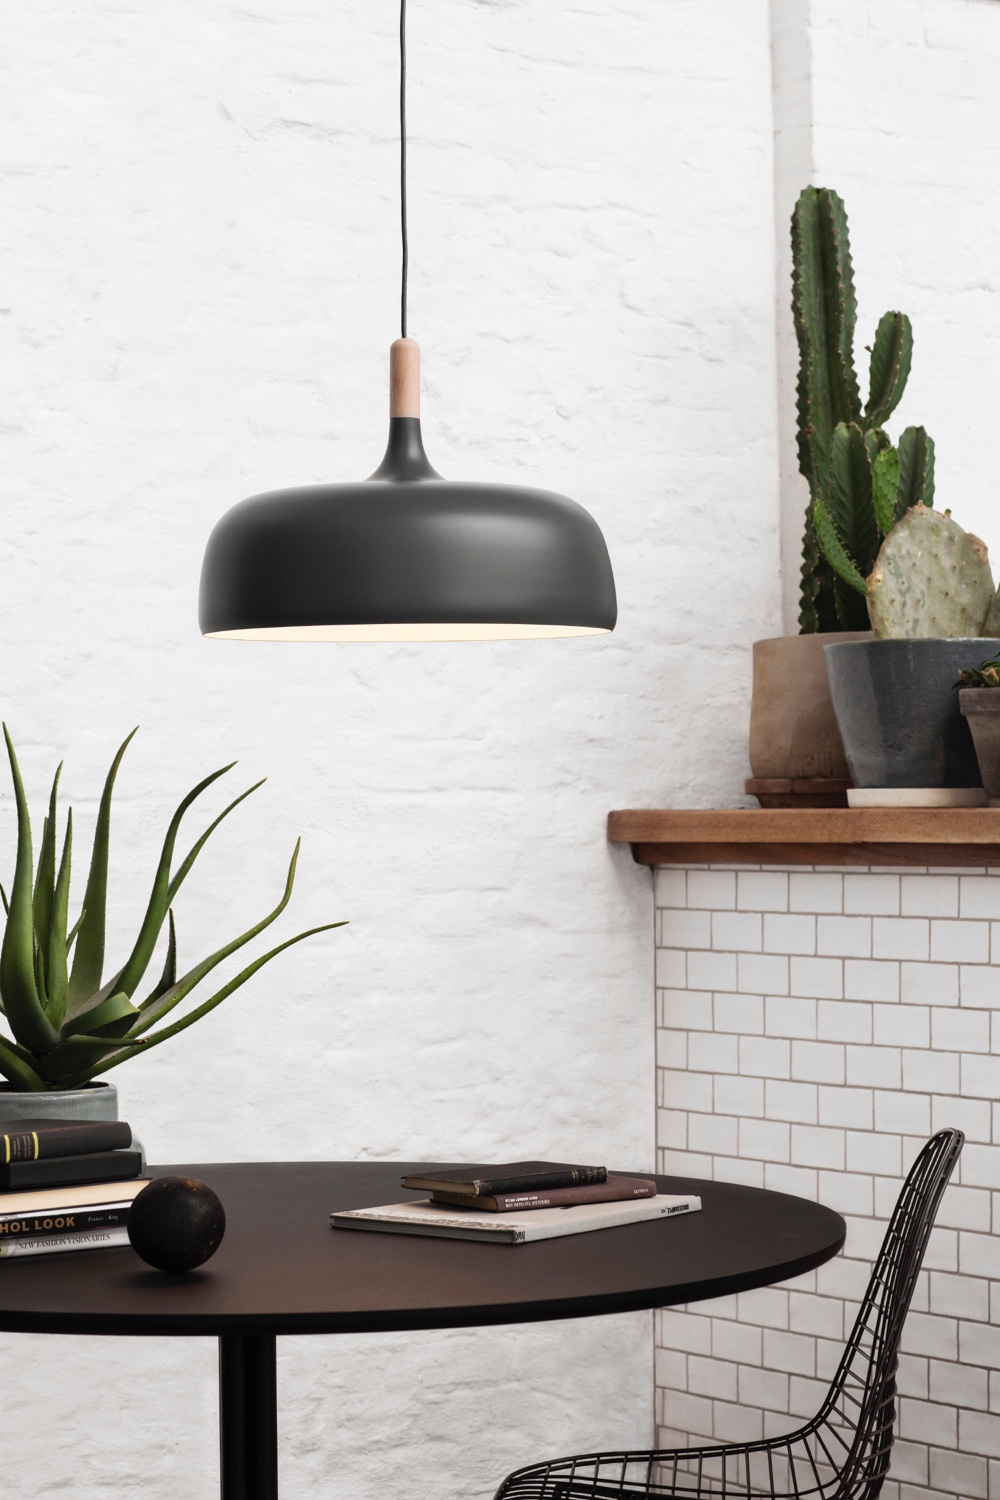 Designed byAtle Tveit, Acorn (in grey)is a contemporary pendant whose shape is inspired by Norwegian autumn forests and the oak acorn.